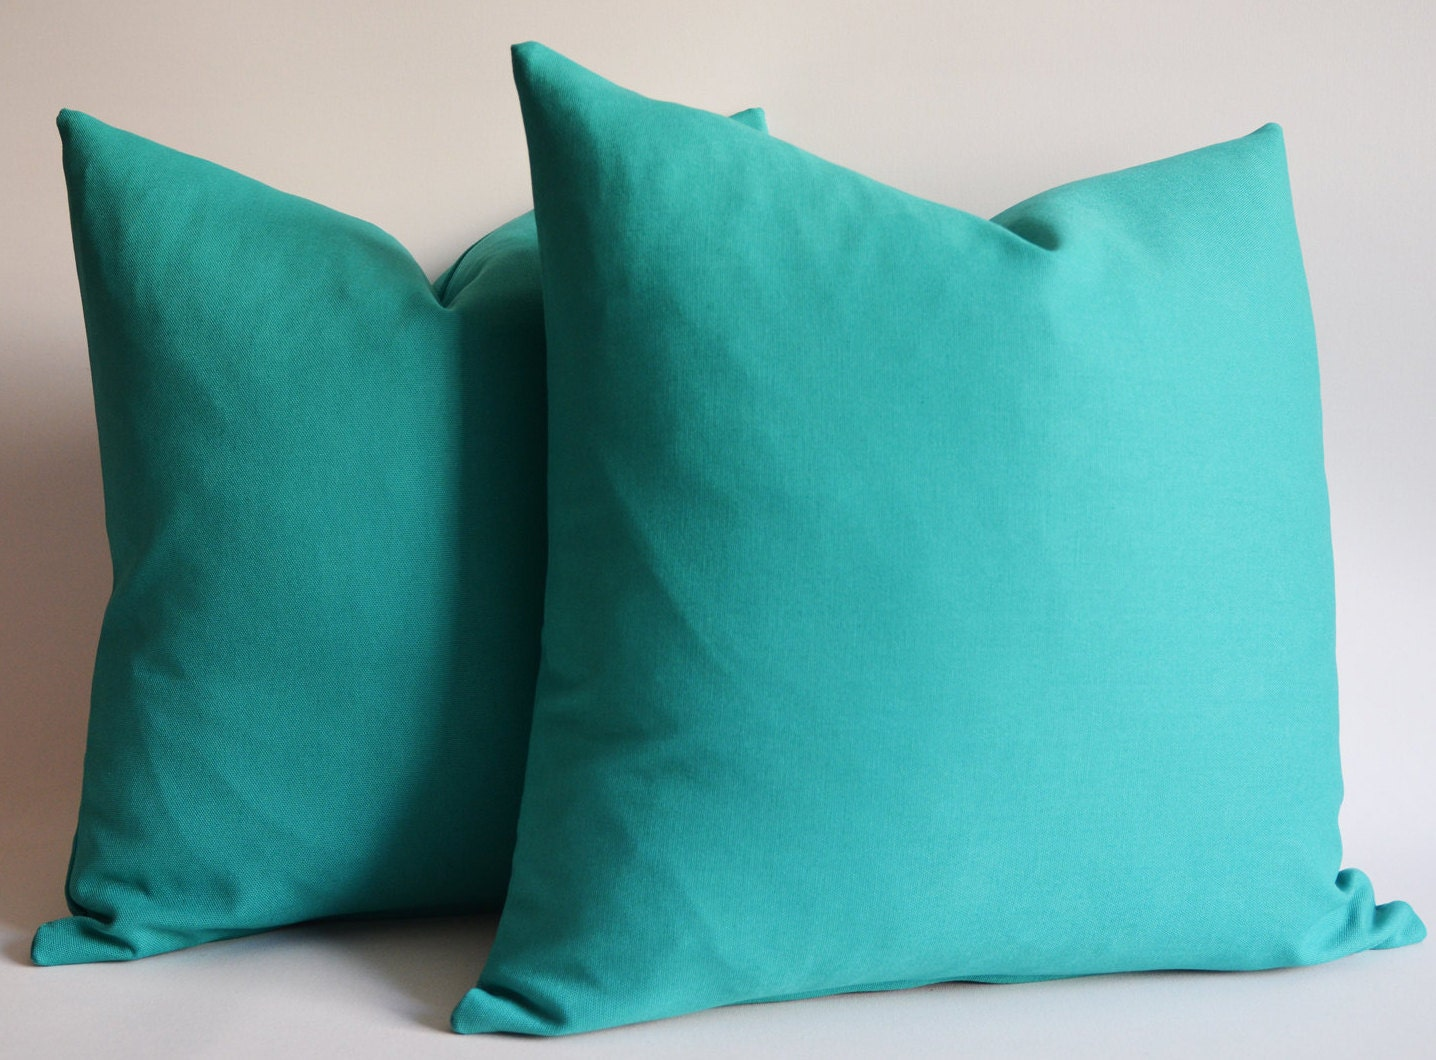 Teal Green Decorative Pillows : Sukan / Teal green throw pillows teal green bedroom by sukan